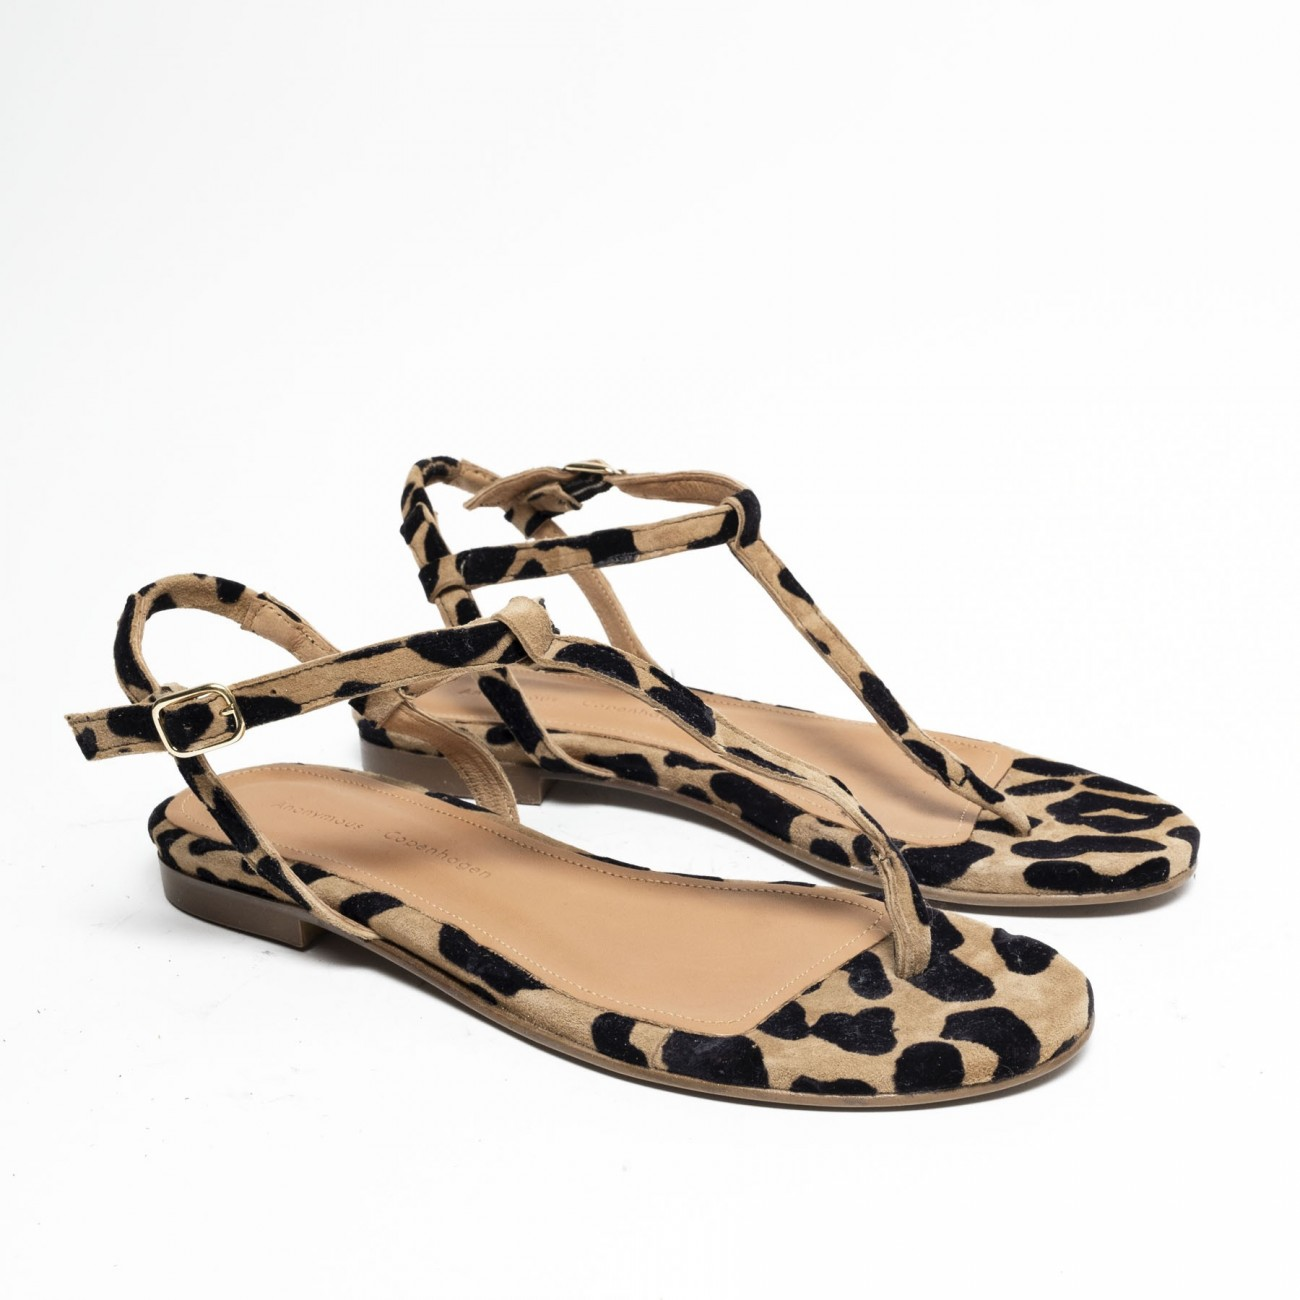 Ava Suede Leopard - Size 38